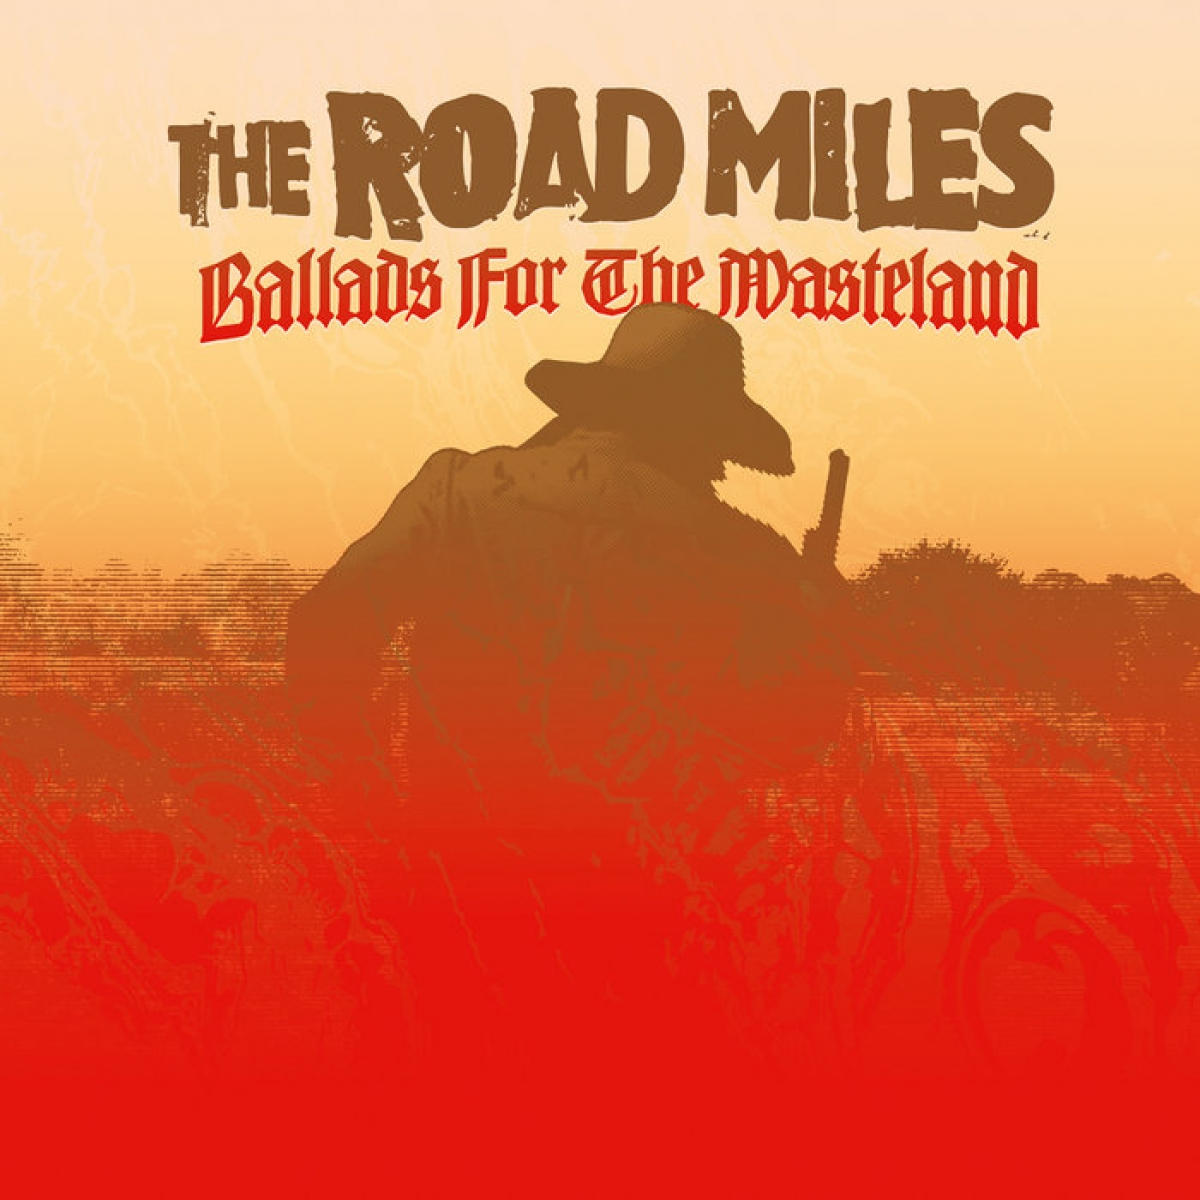 The Road Miles - Ballads For The Wasteland (Archaeopia, 2017)